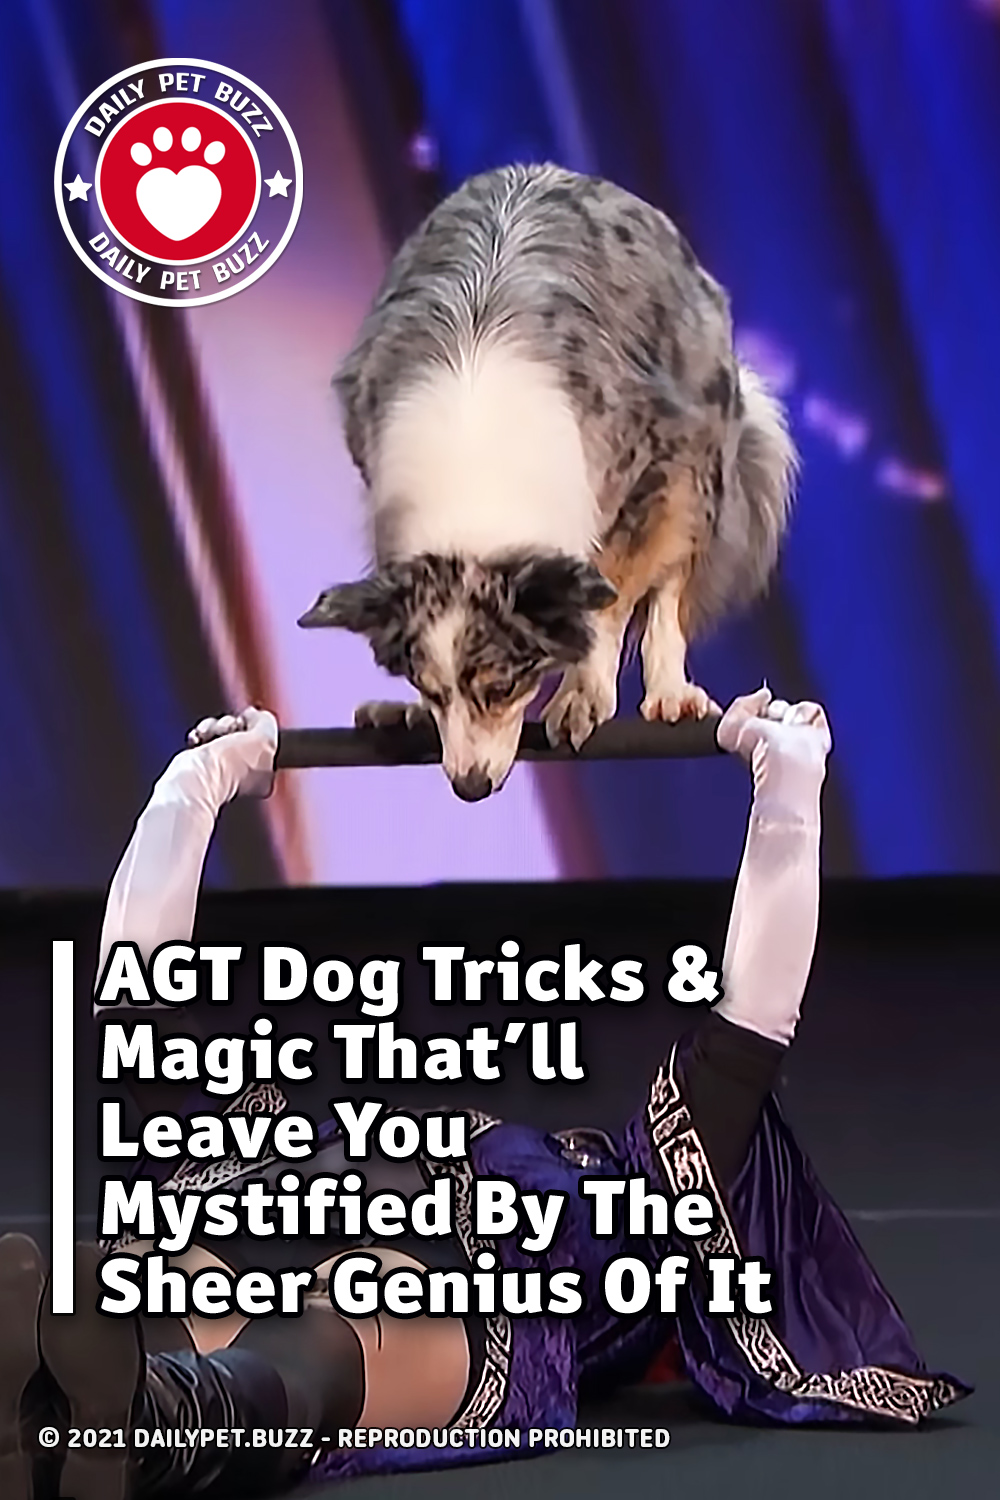 AGT Dog Tricks & Magic That\'ll Leave You Mystified By The Sheer Genius Of It